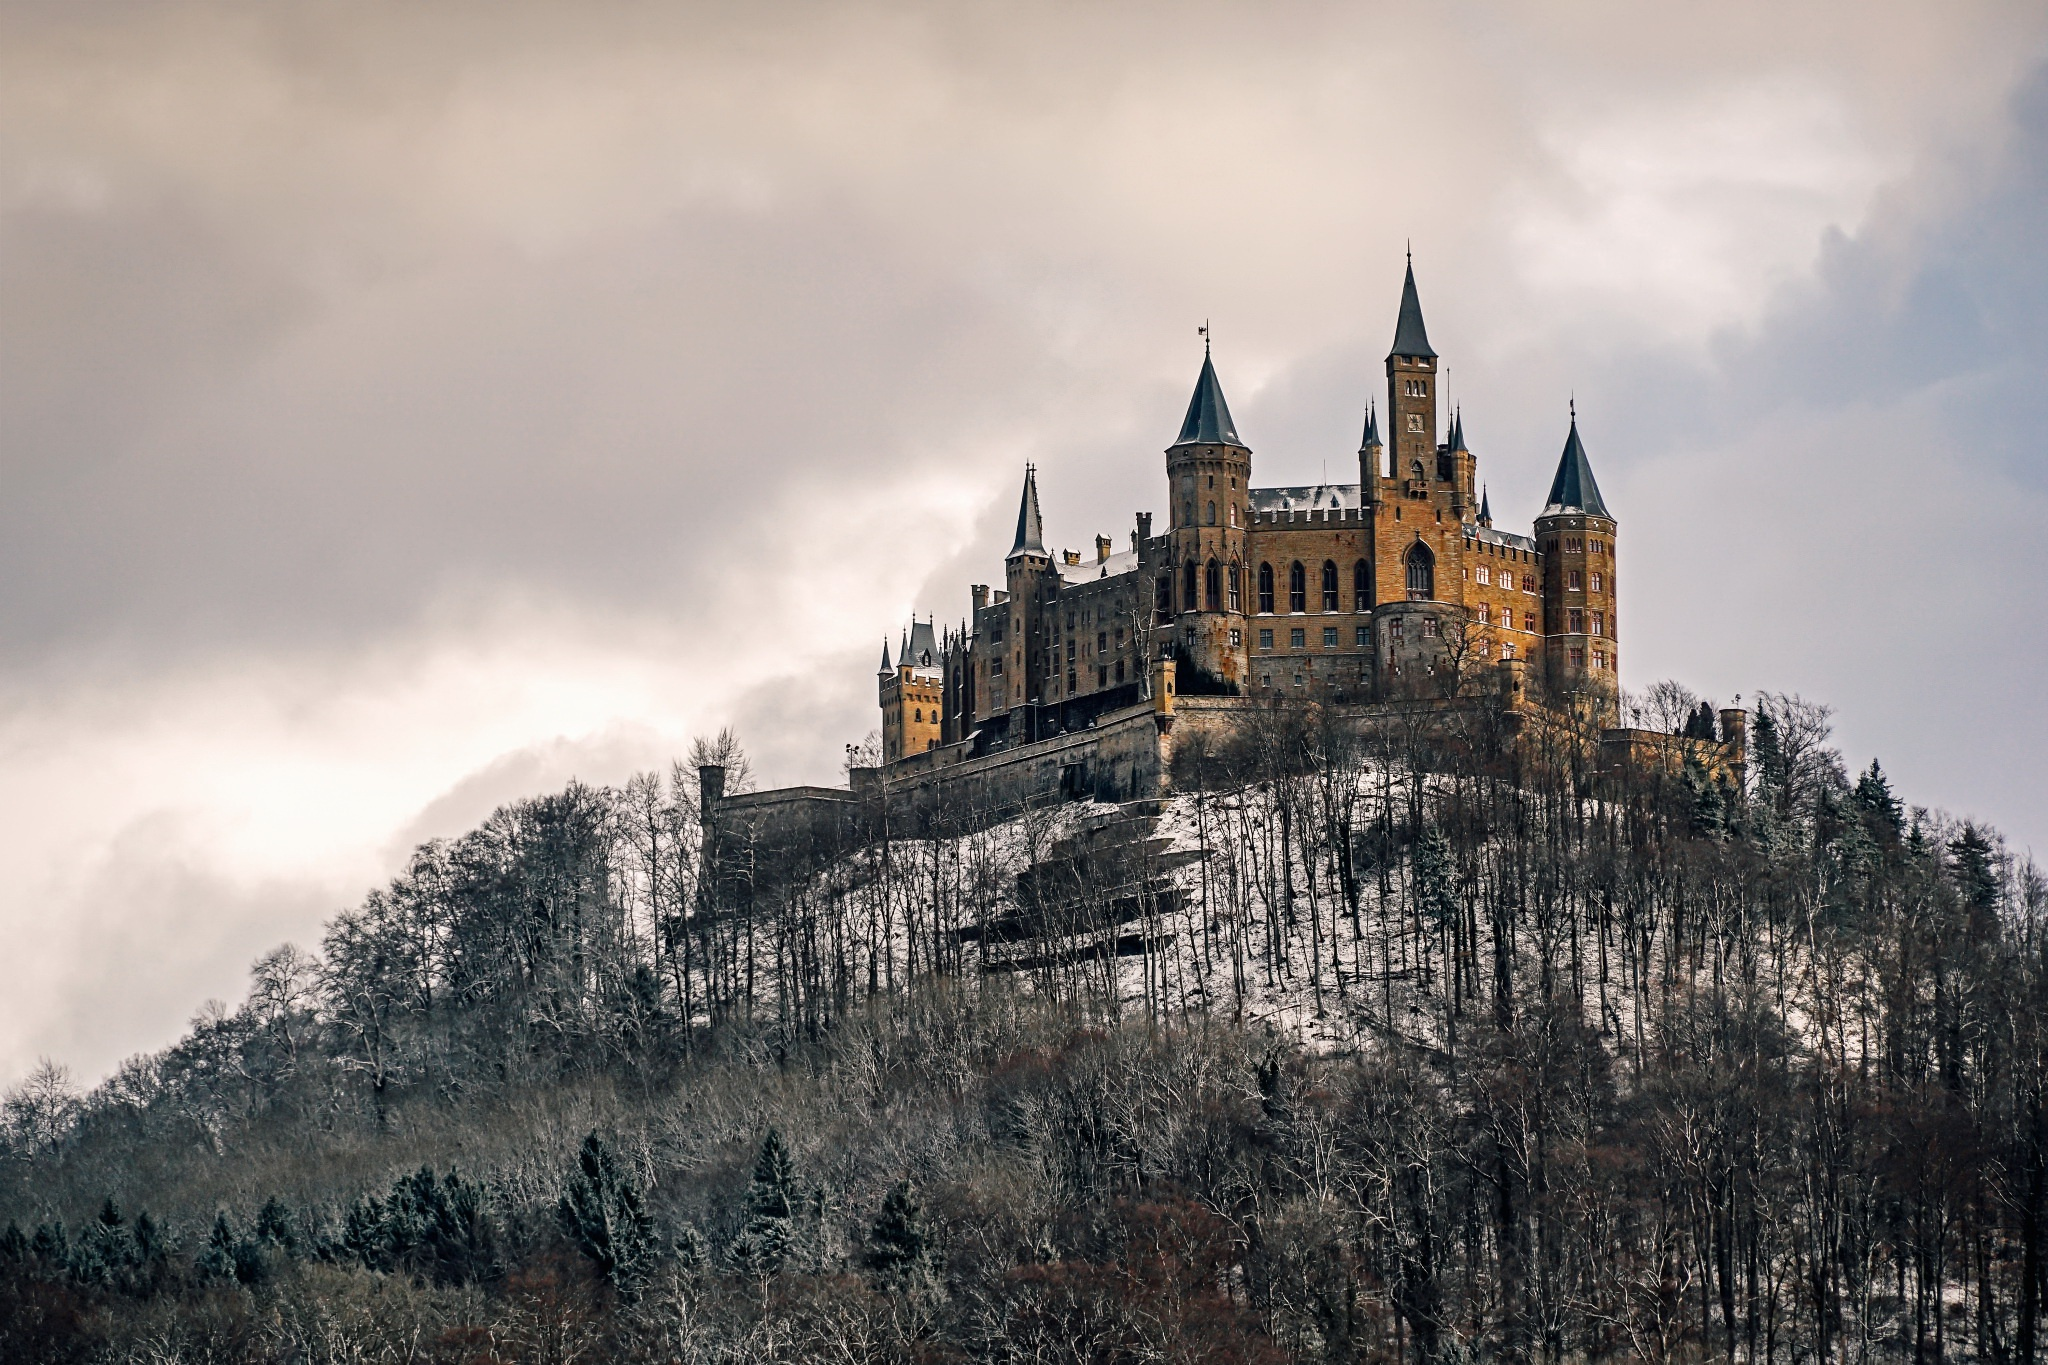 Hohenzollern Castle HD Wallpaper Background Image 2048x1365 2048x1365